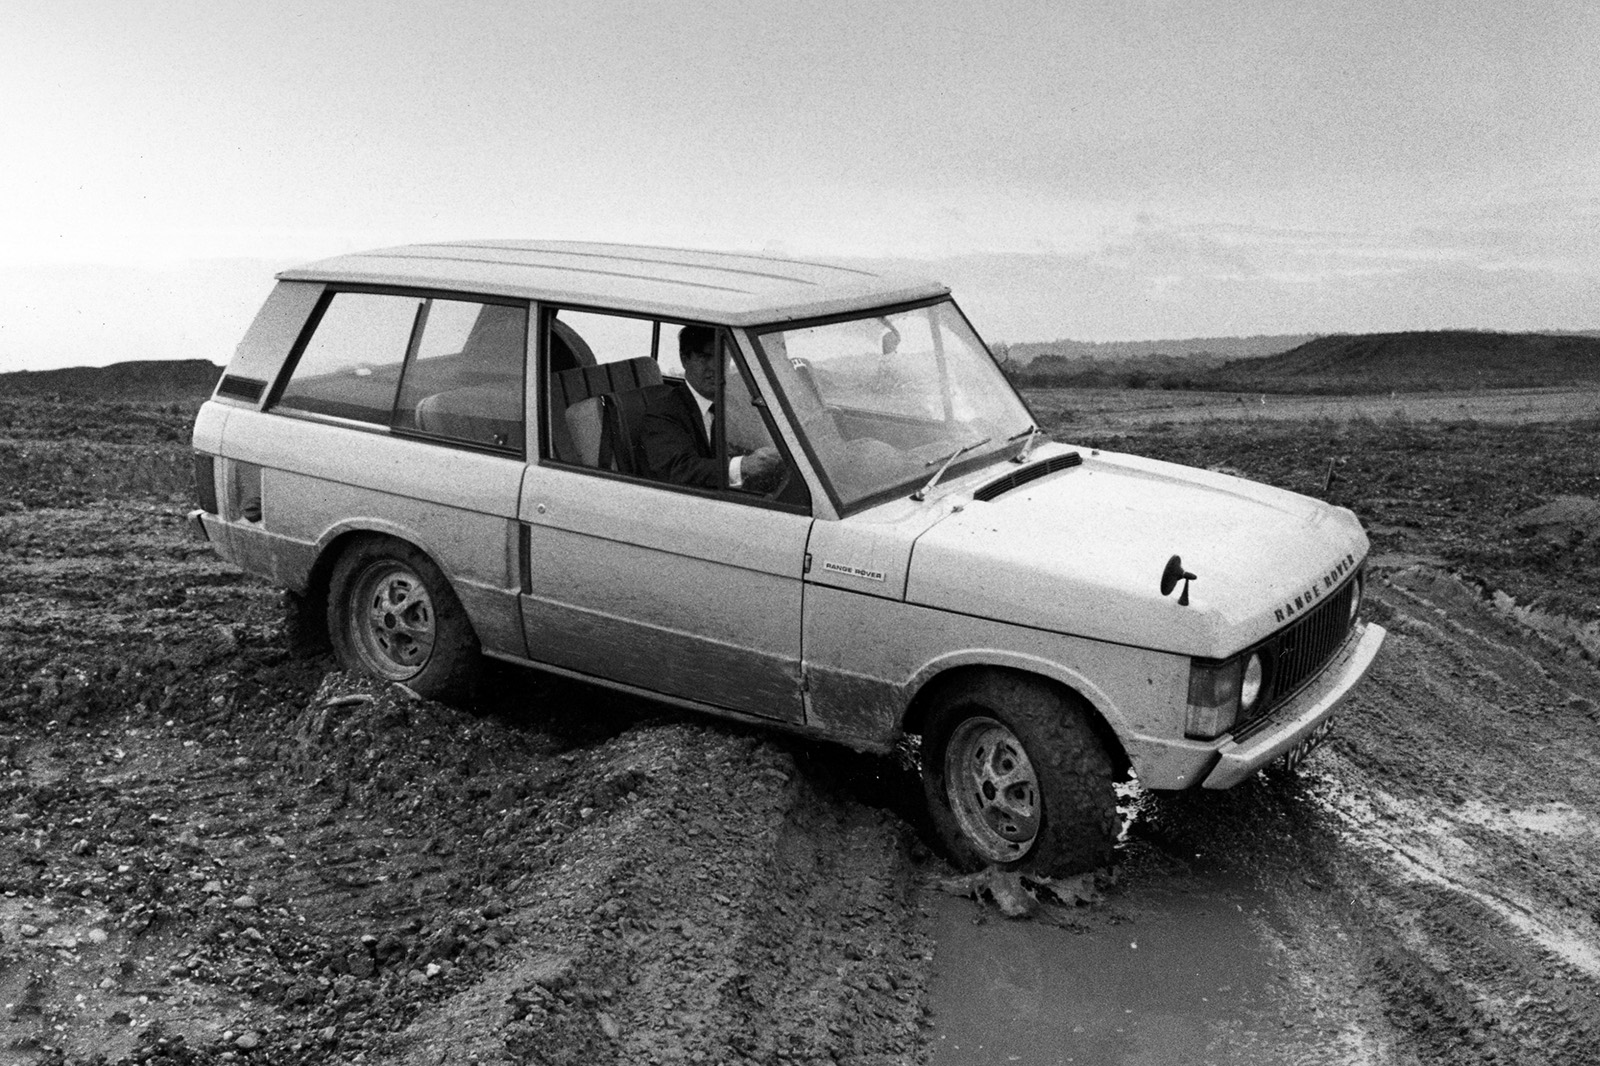 Range Rover Mk1 1970 Retro Road Test Autocar Transmission Fluid Comment Why The New Needed A Plug In Hybrid Variant